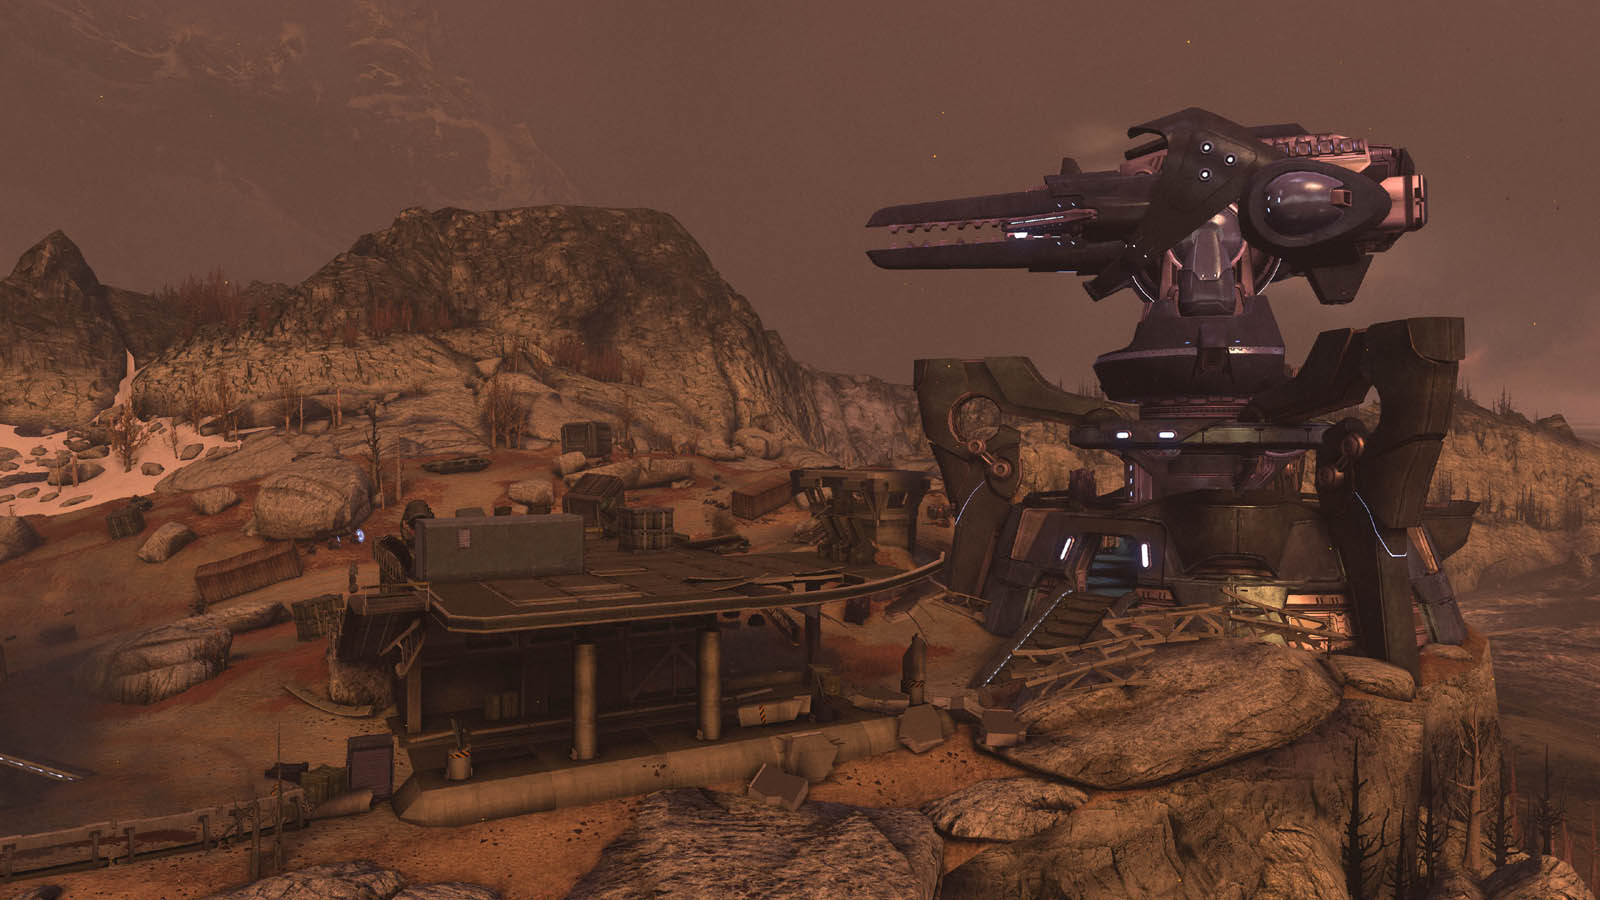 Halo: Reach - Firefight Outpost